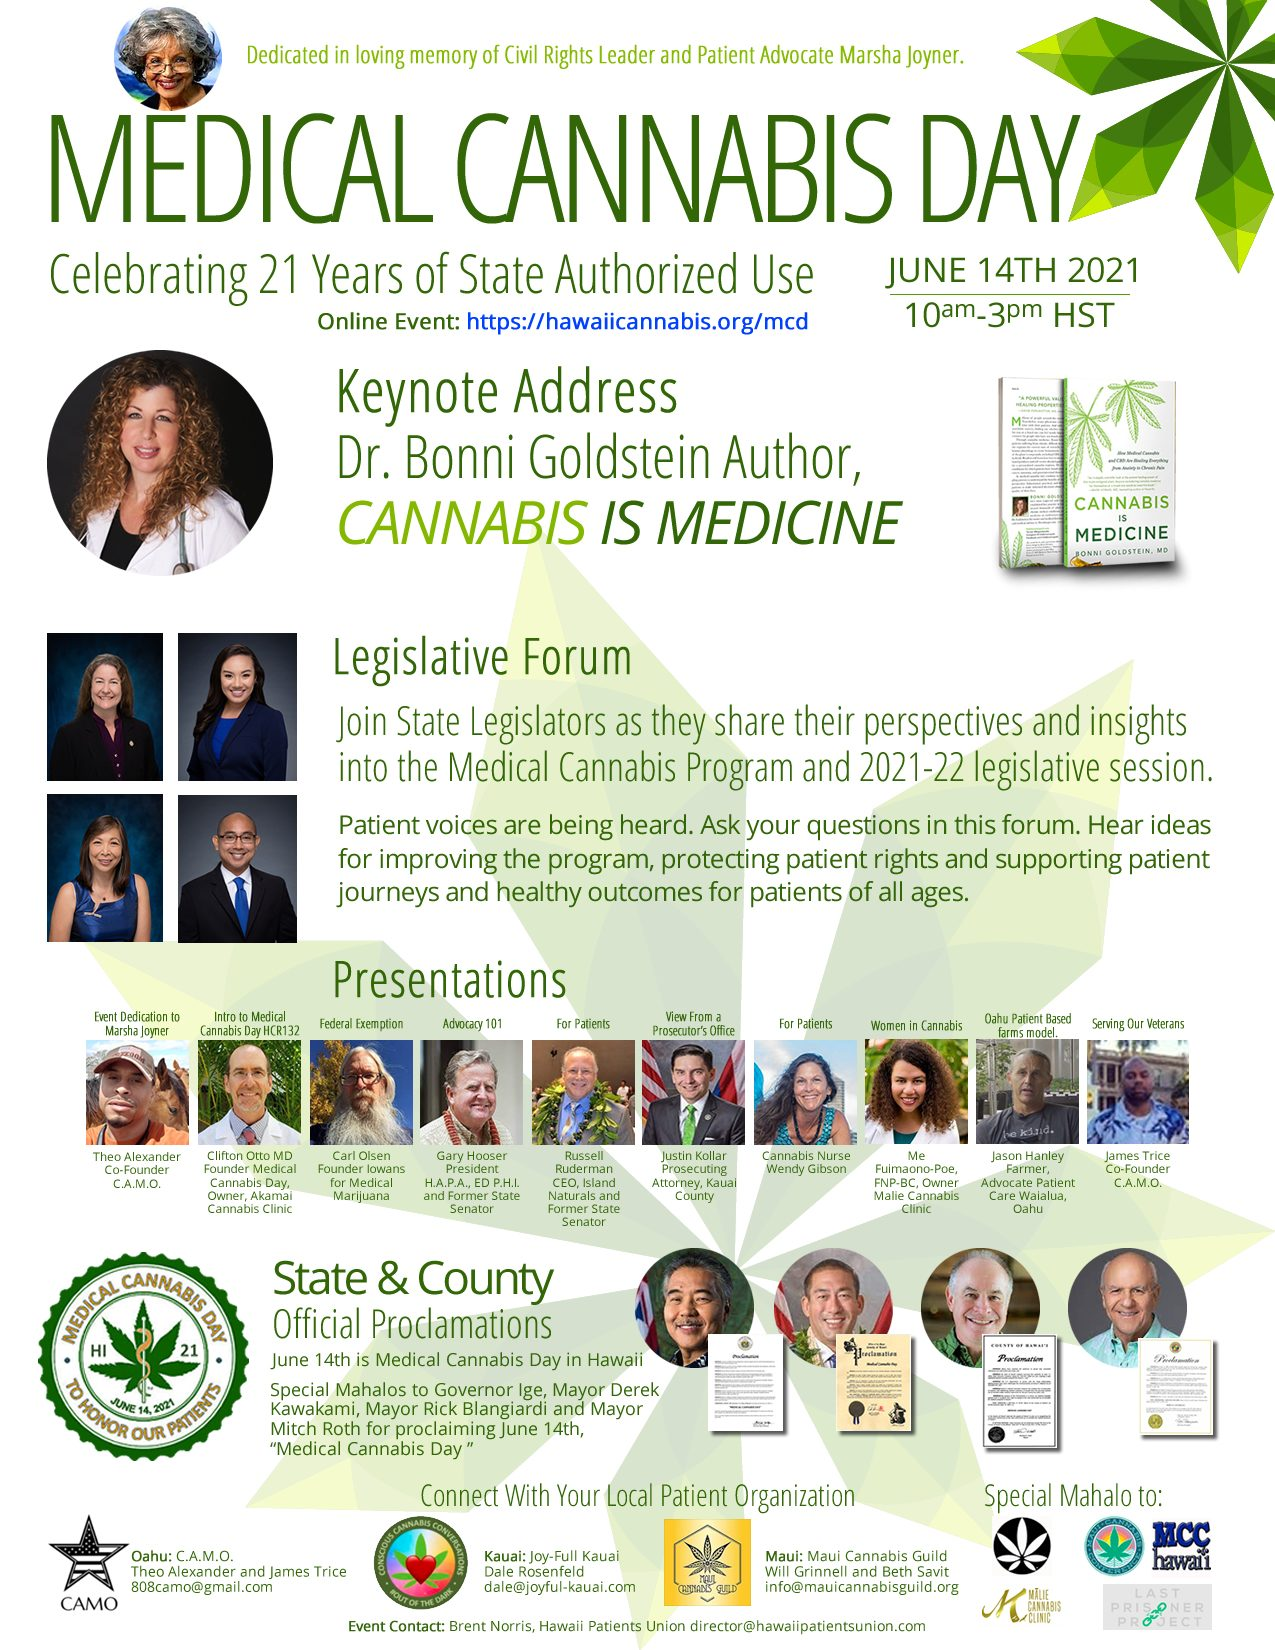 Medical Cannabis Day Event Flyer in .jpg format for sharing.